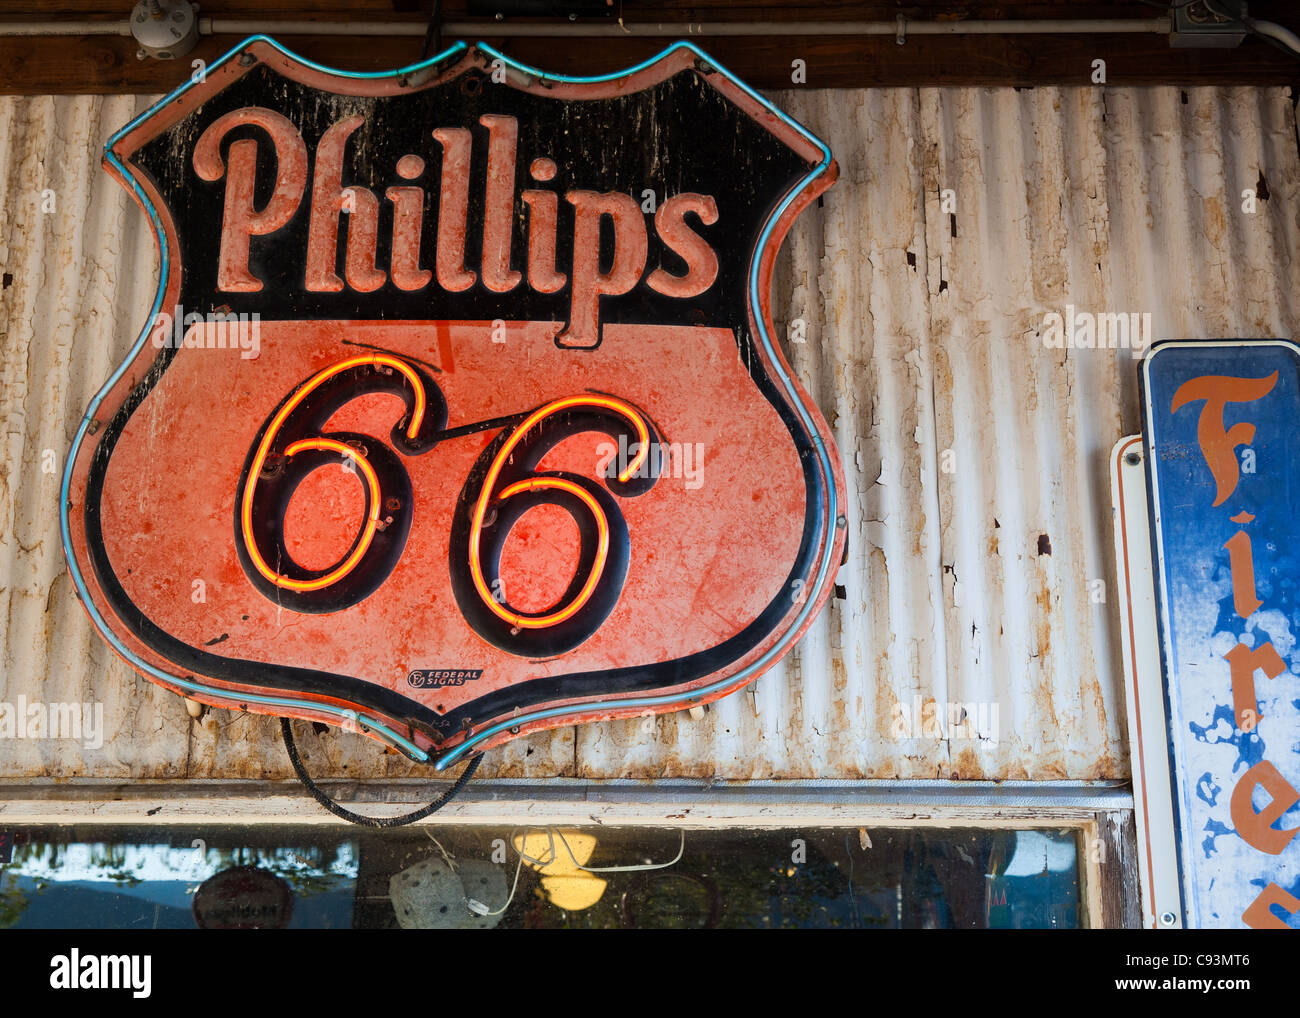 Old Phillips Route 66 neon sign outside Hackberry General Store along historic Route 66, Arizona, USA - Stock Image